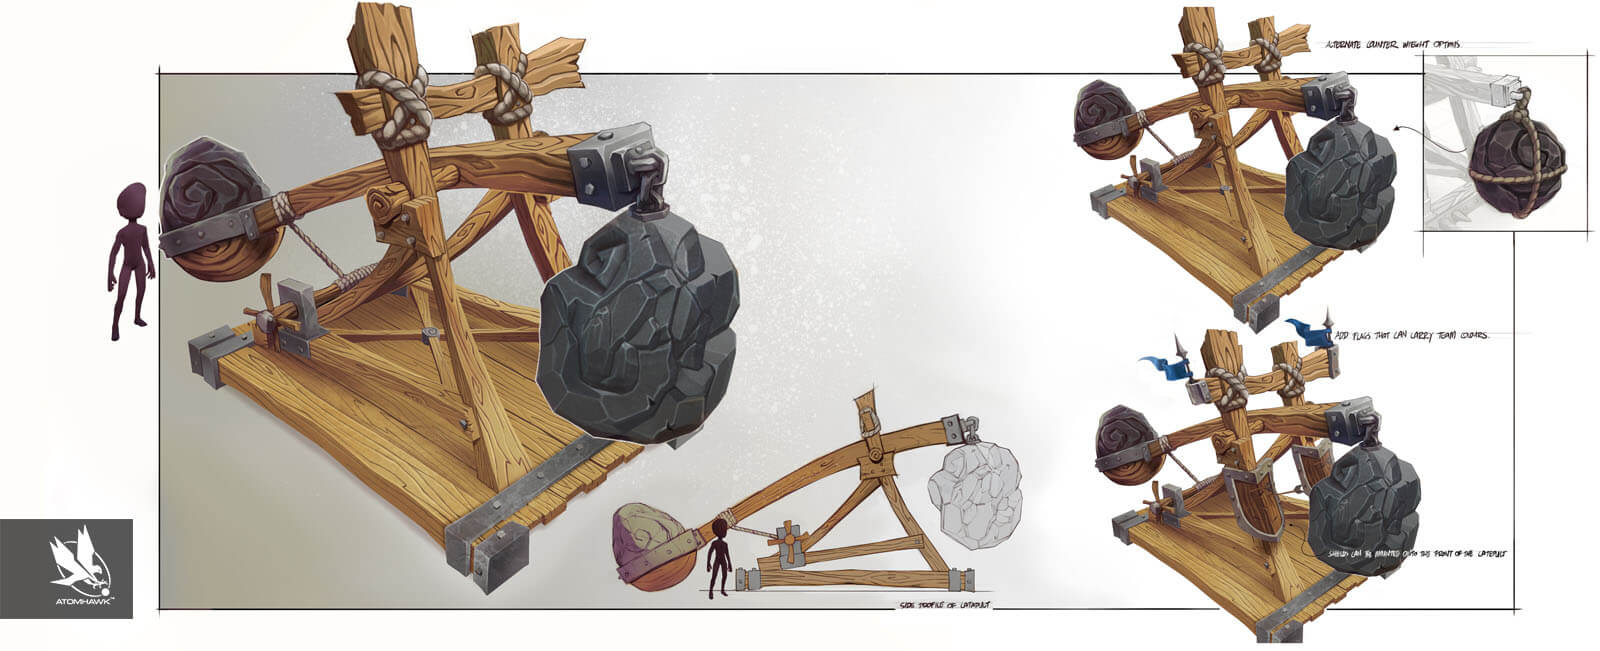 Project Spark - Prop Design - Catapult